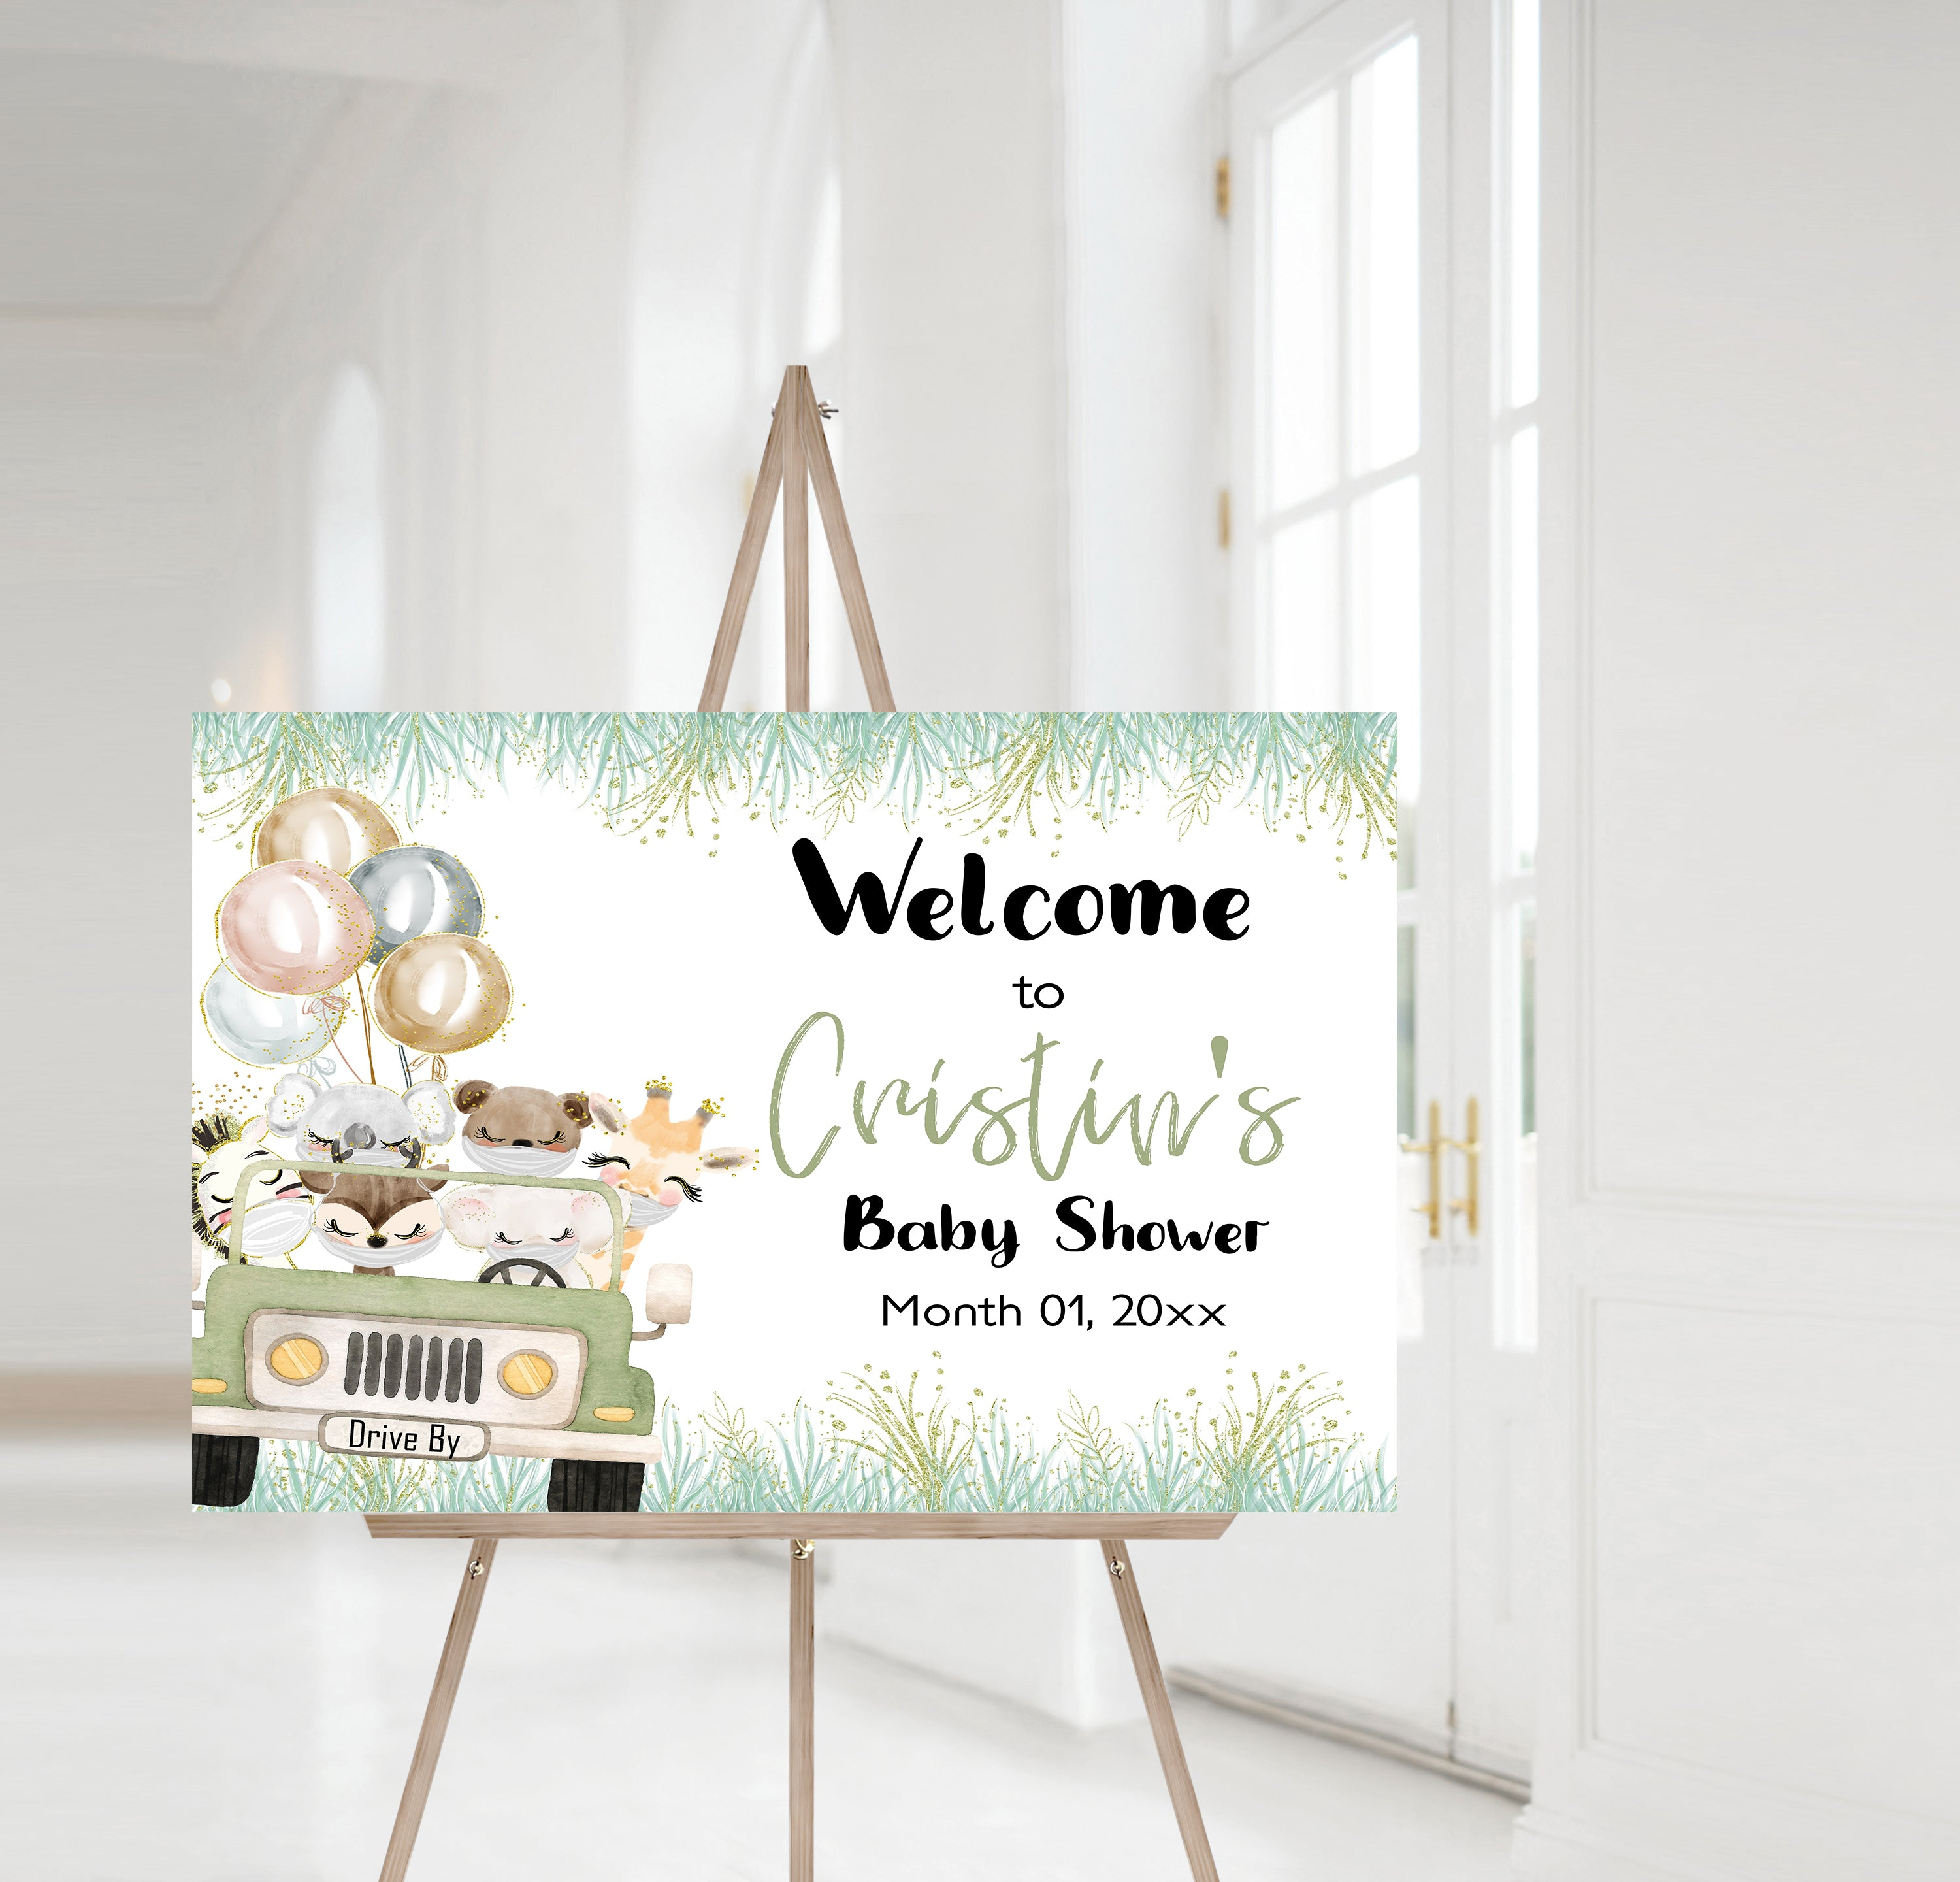 Editable Safari Jeep Baby Shower Welcome Sign | Jungle theme shower decorations - 35D